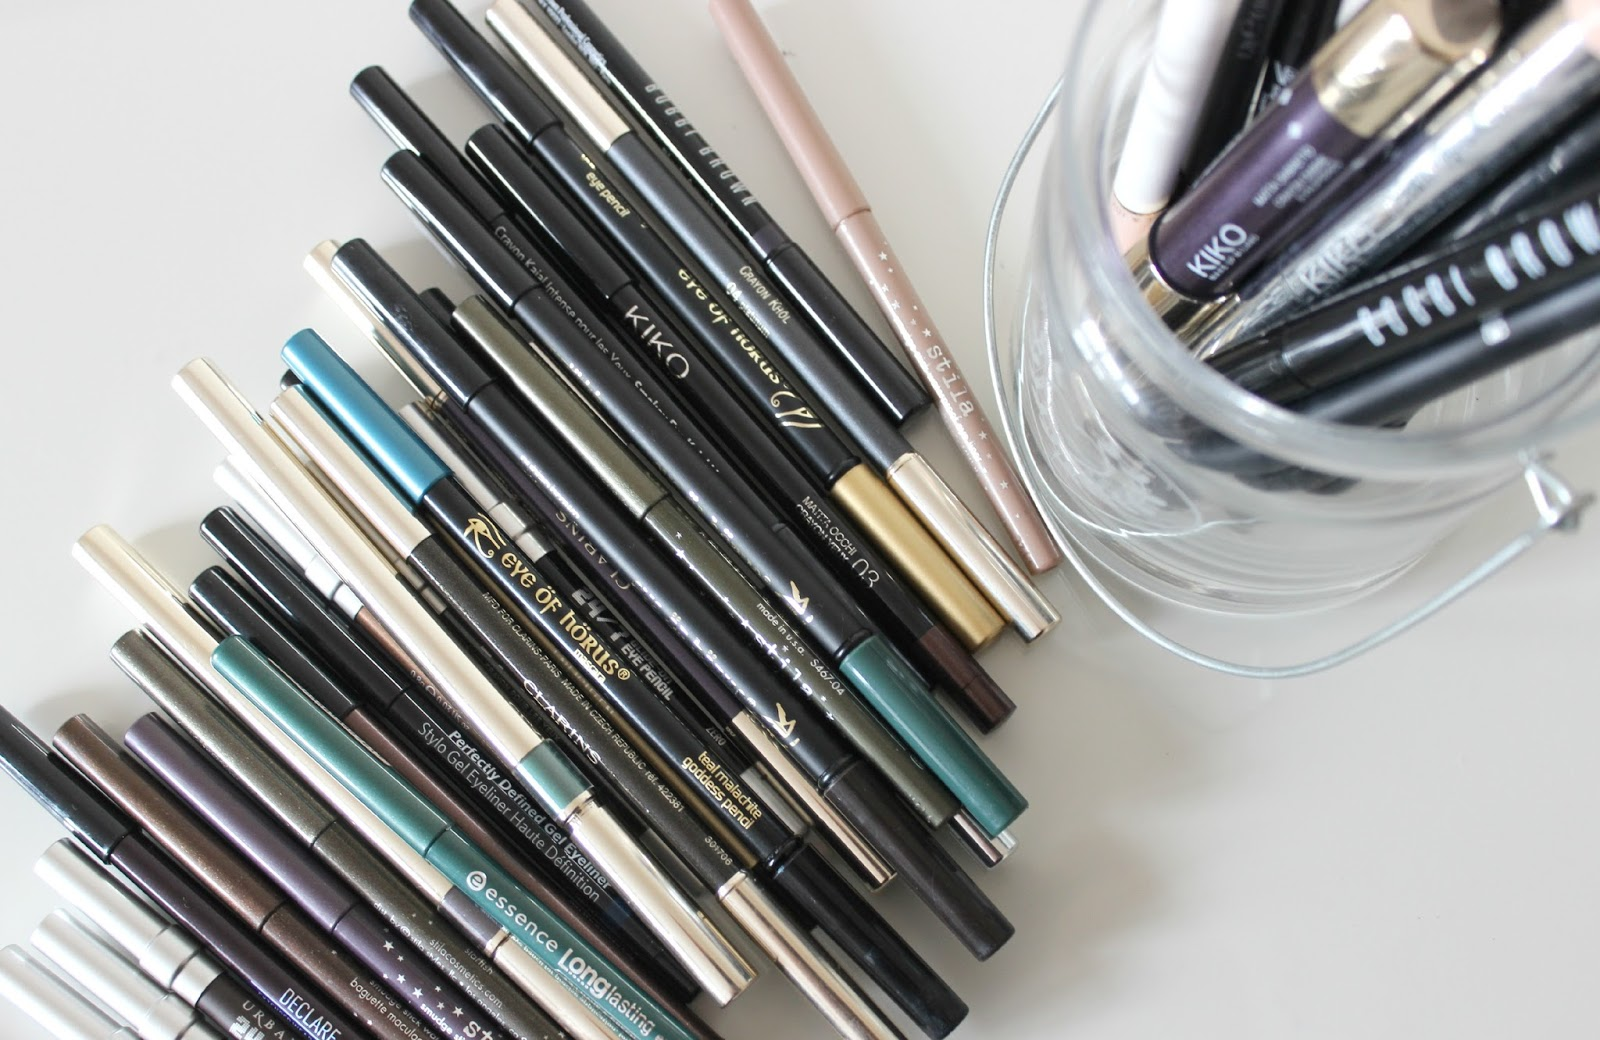 A picture of pencil eye liners